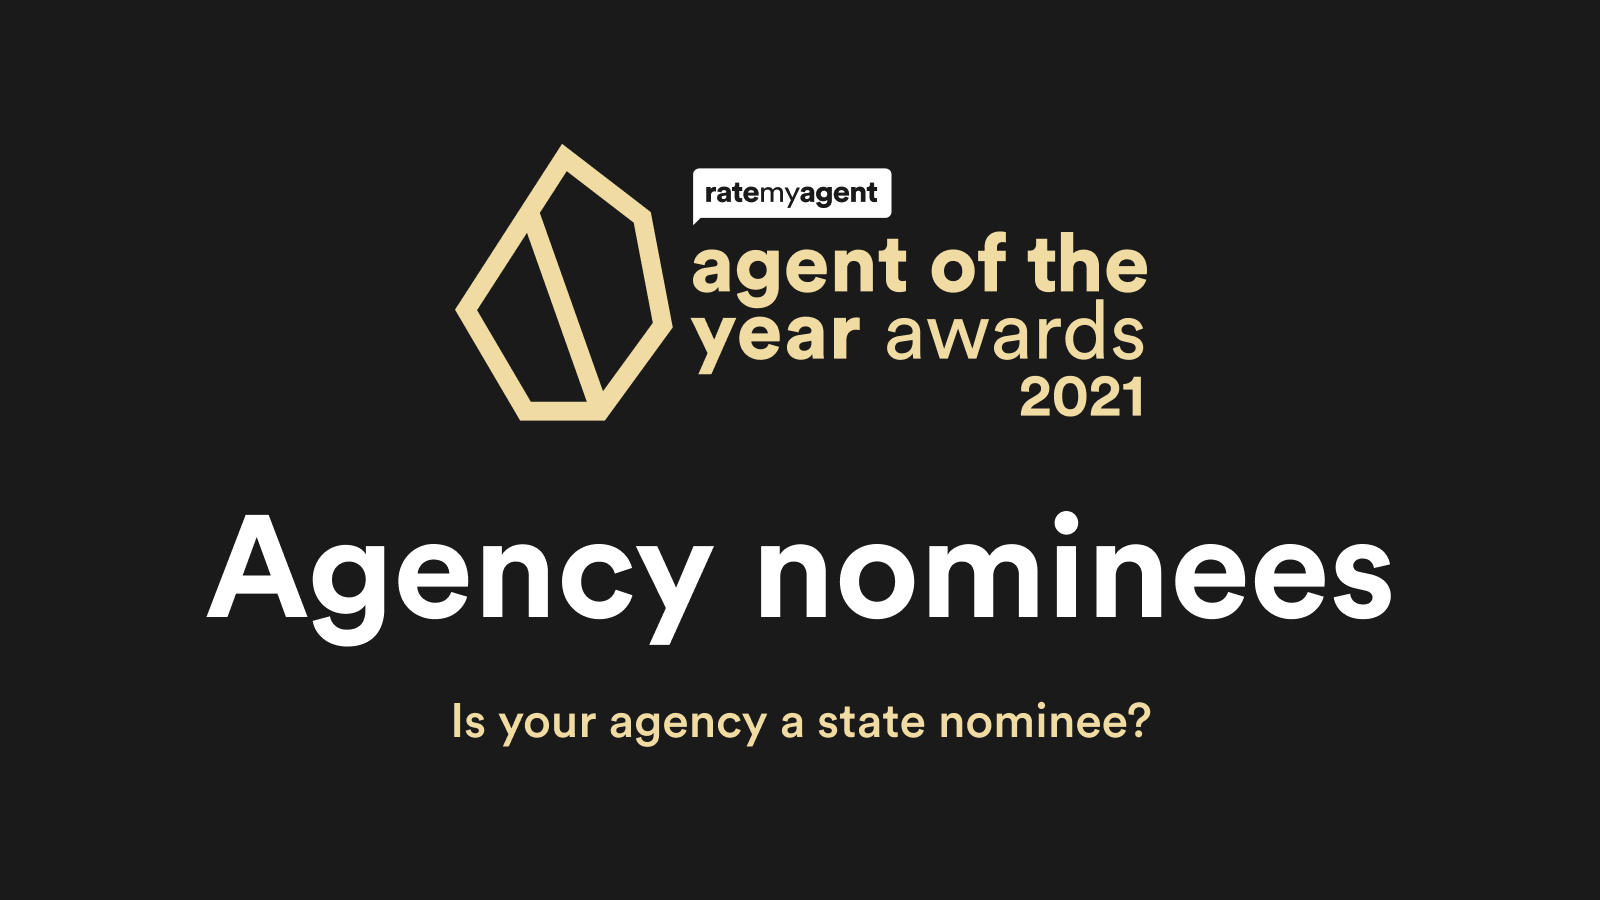 2021 Agency of the Year Nominees announced